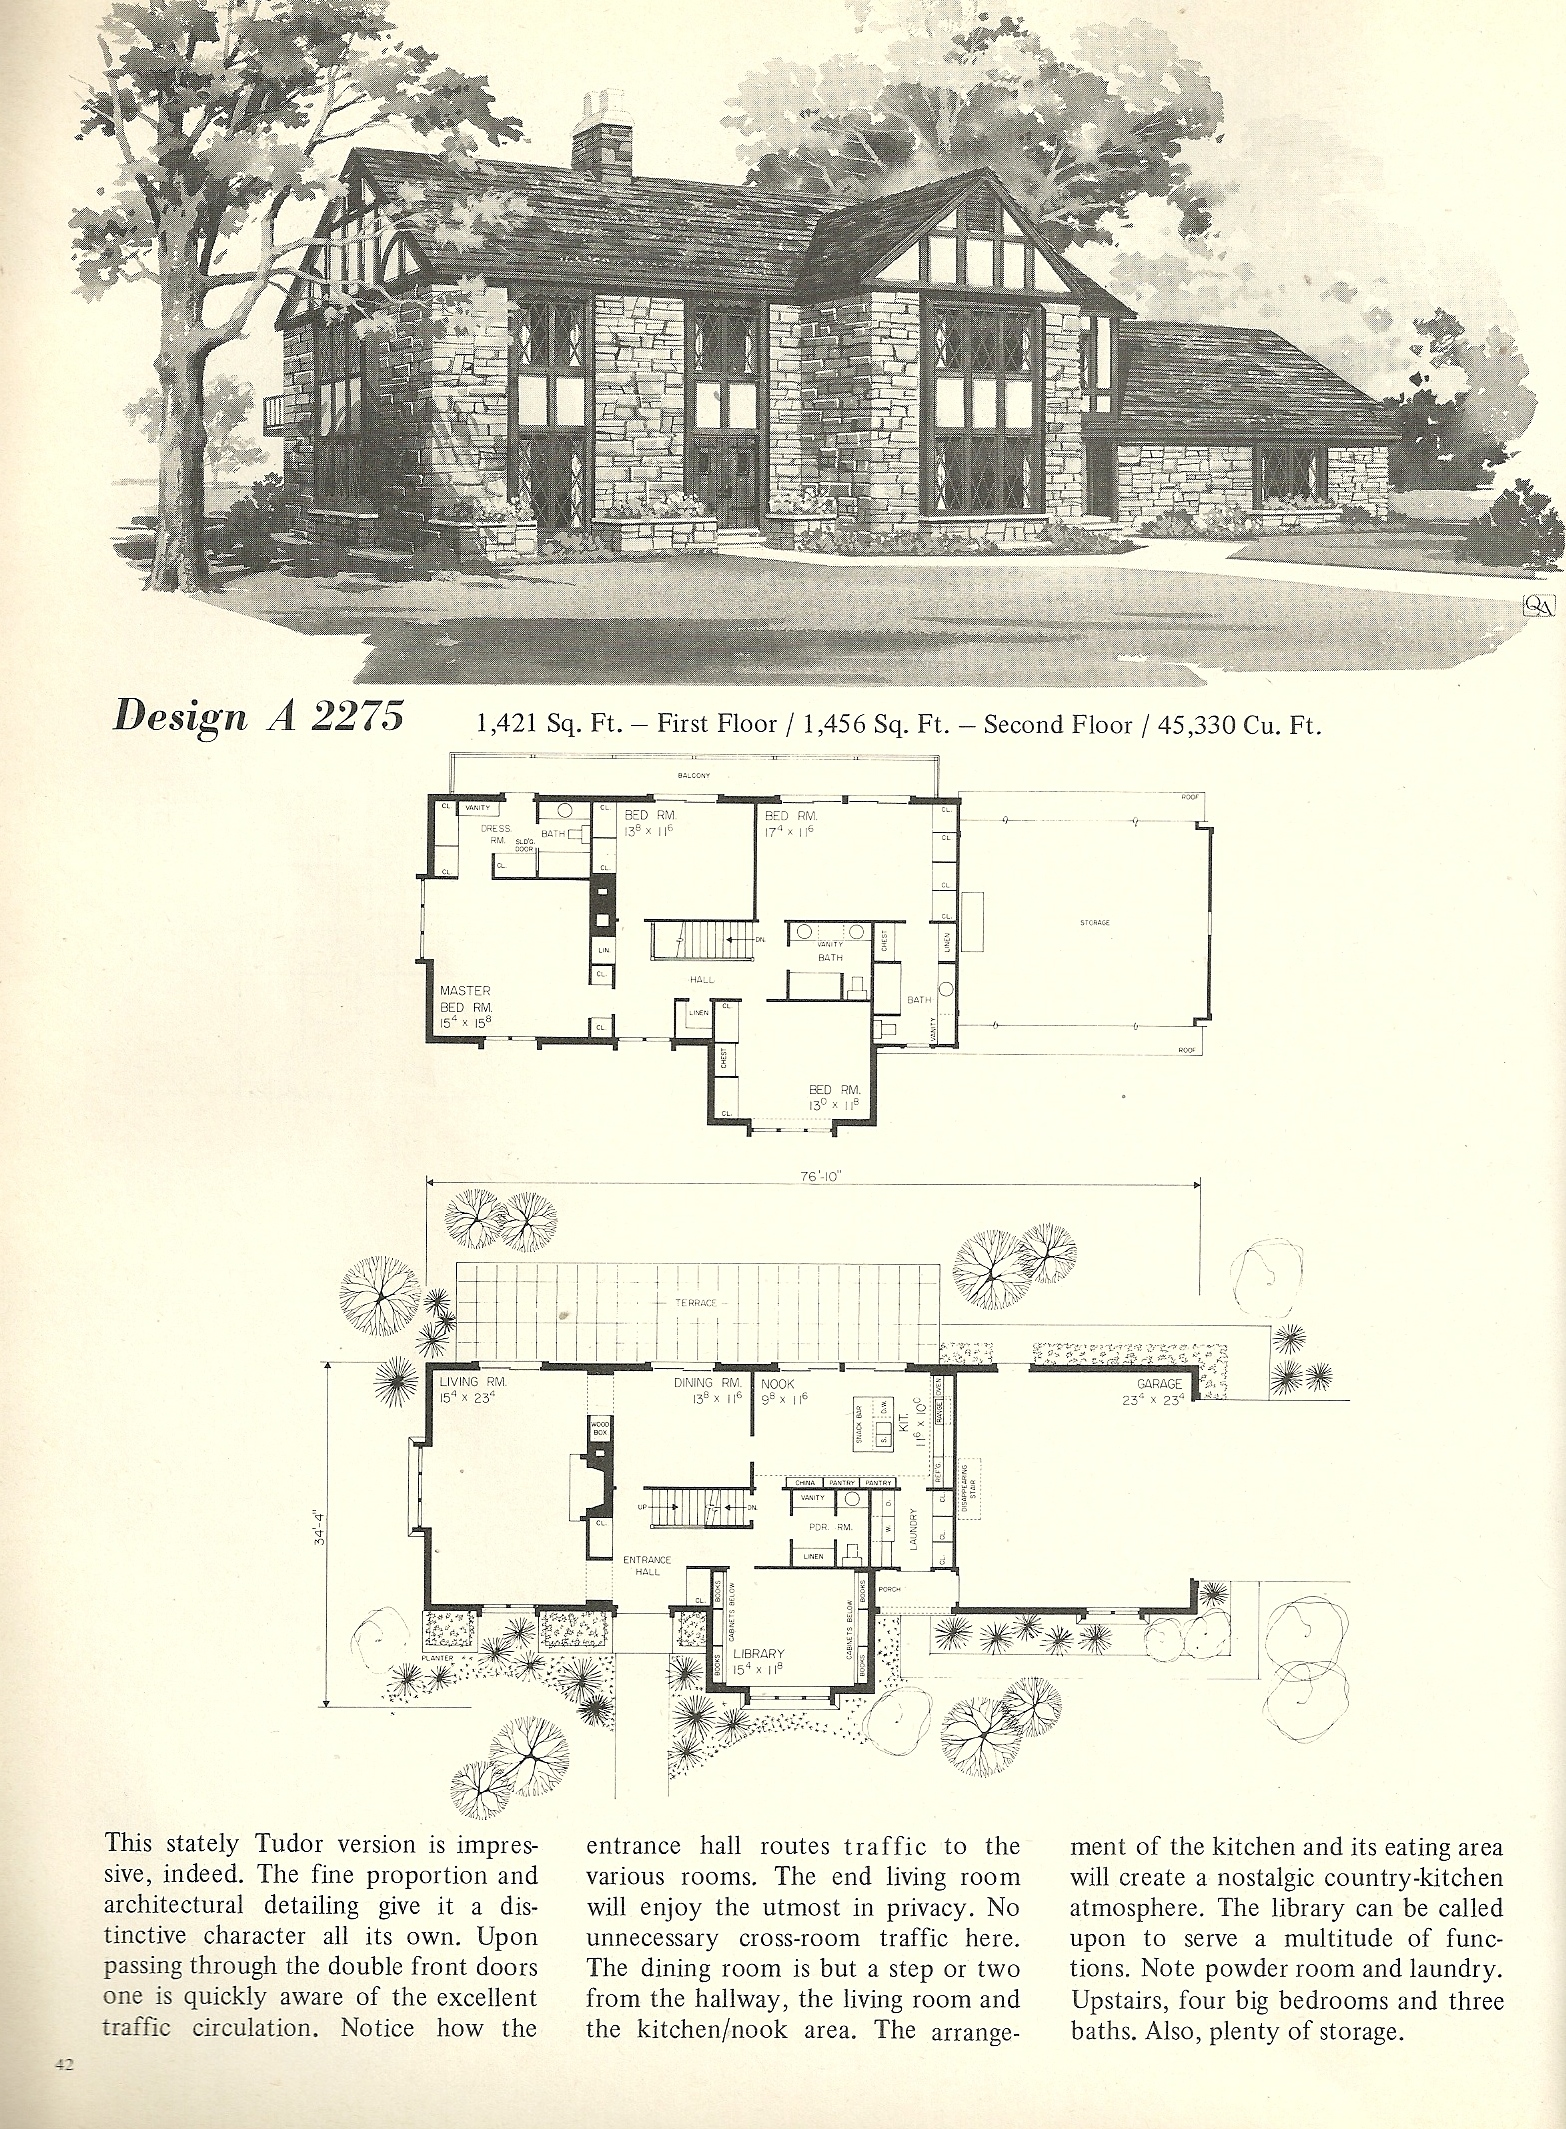 Vintage house plans 1970s english style tudor homes for 1970s house floor plans